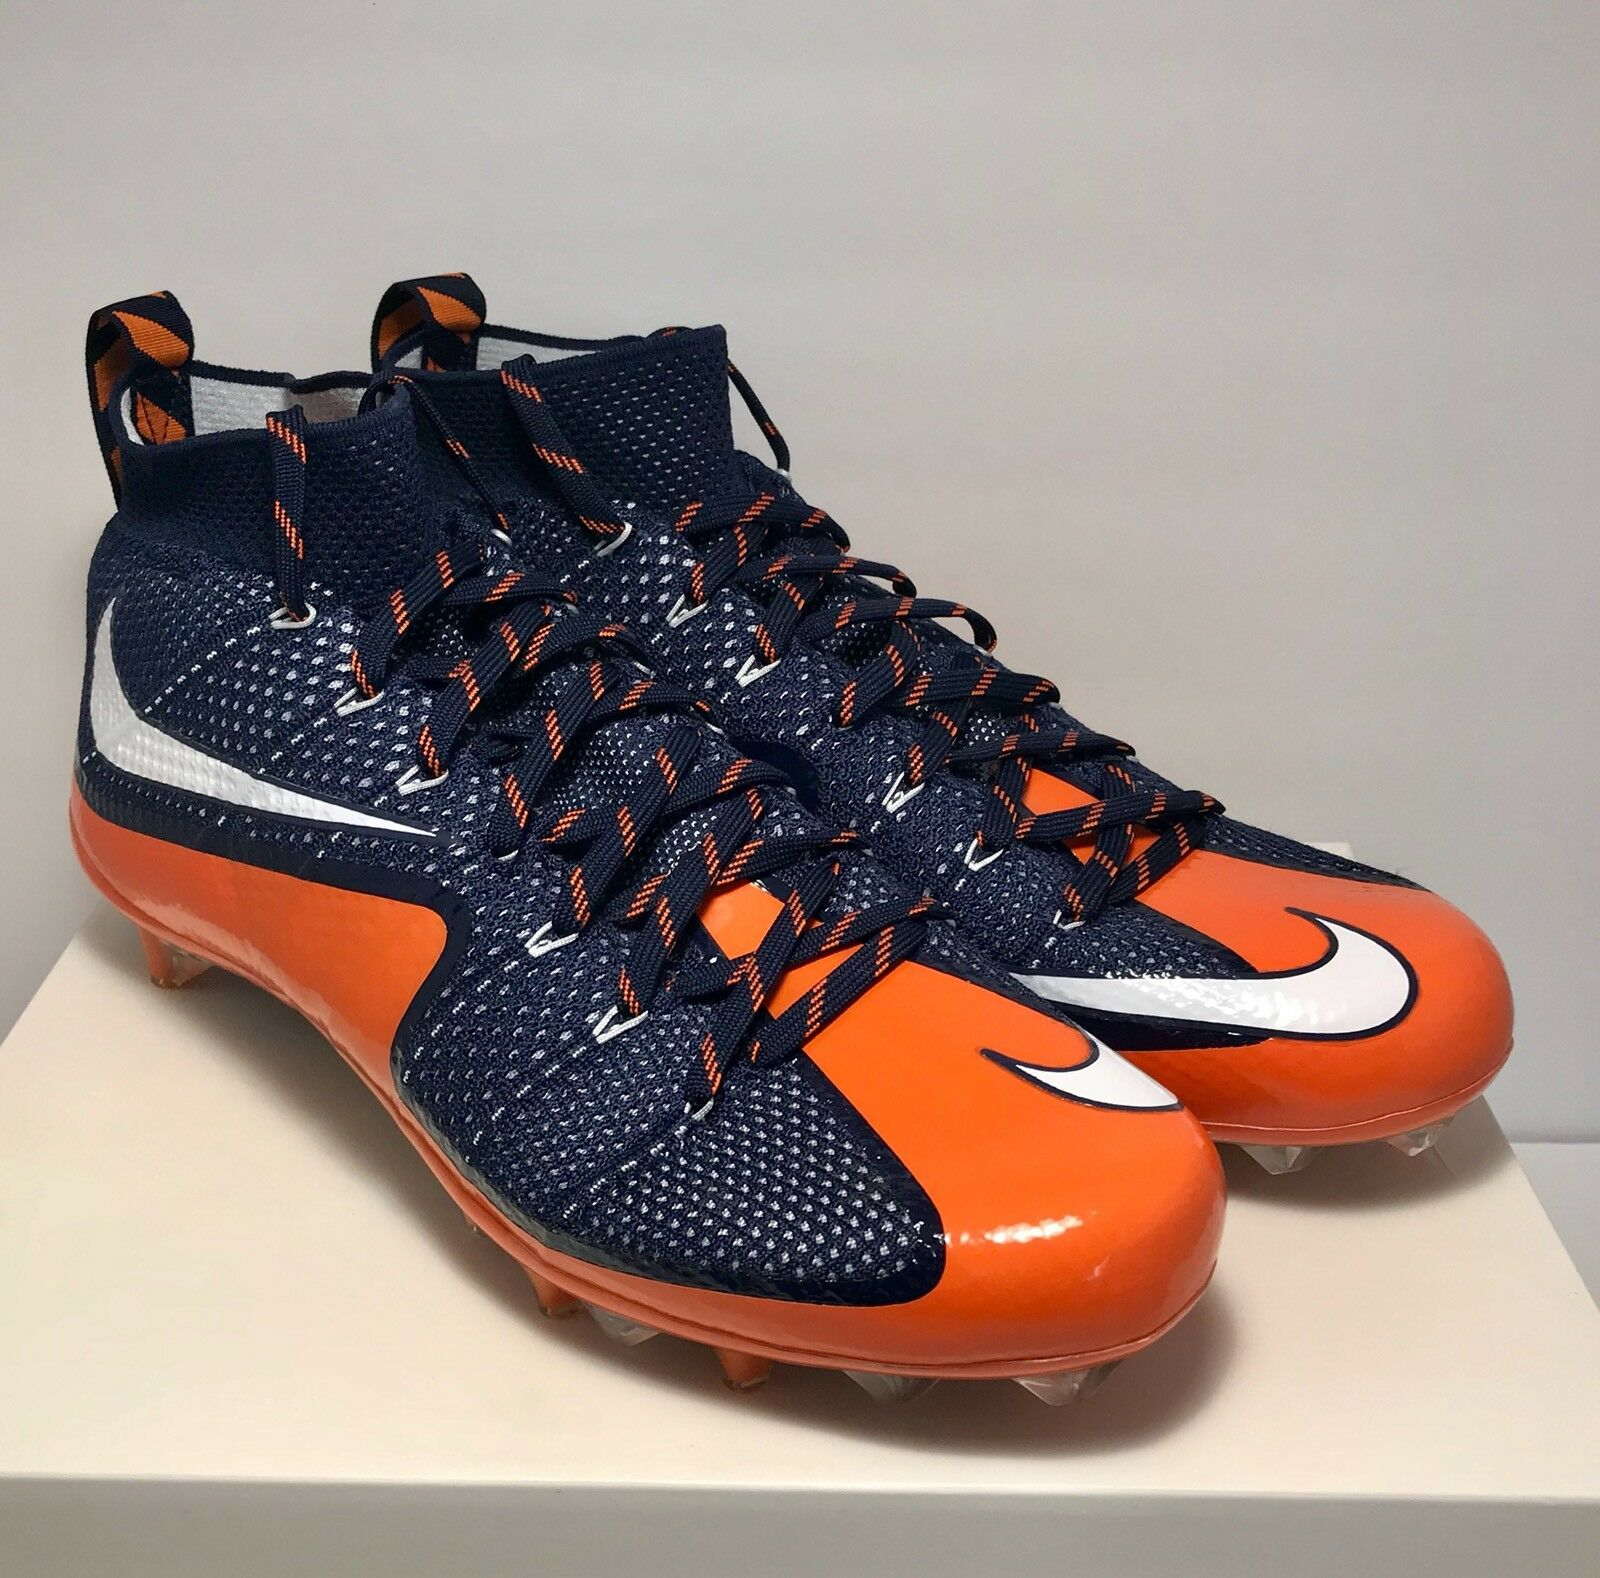 Nike Mens Size 13 Untouchable 1 Football Cleats bluee orange New Rare  200